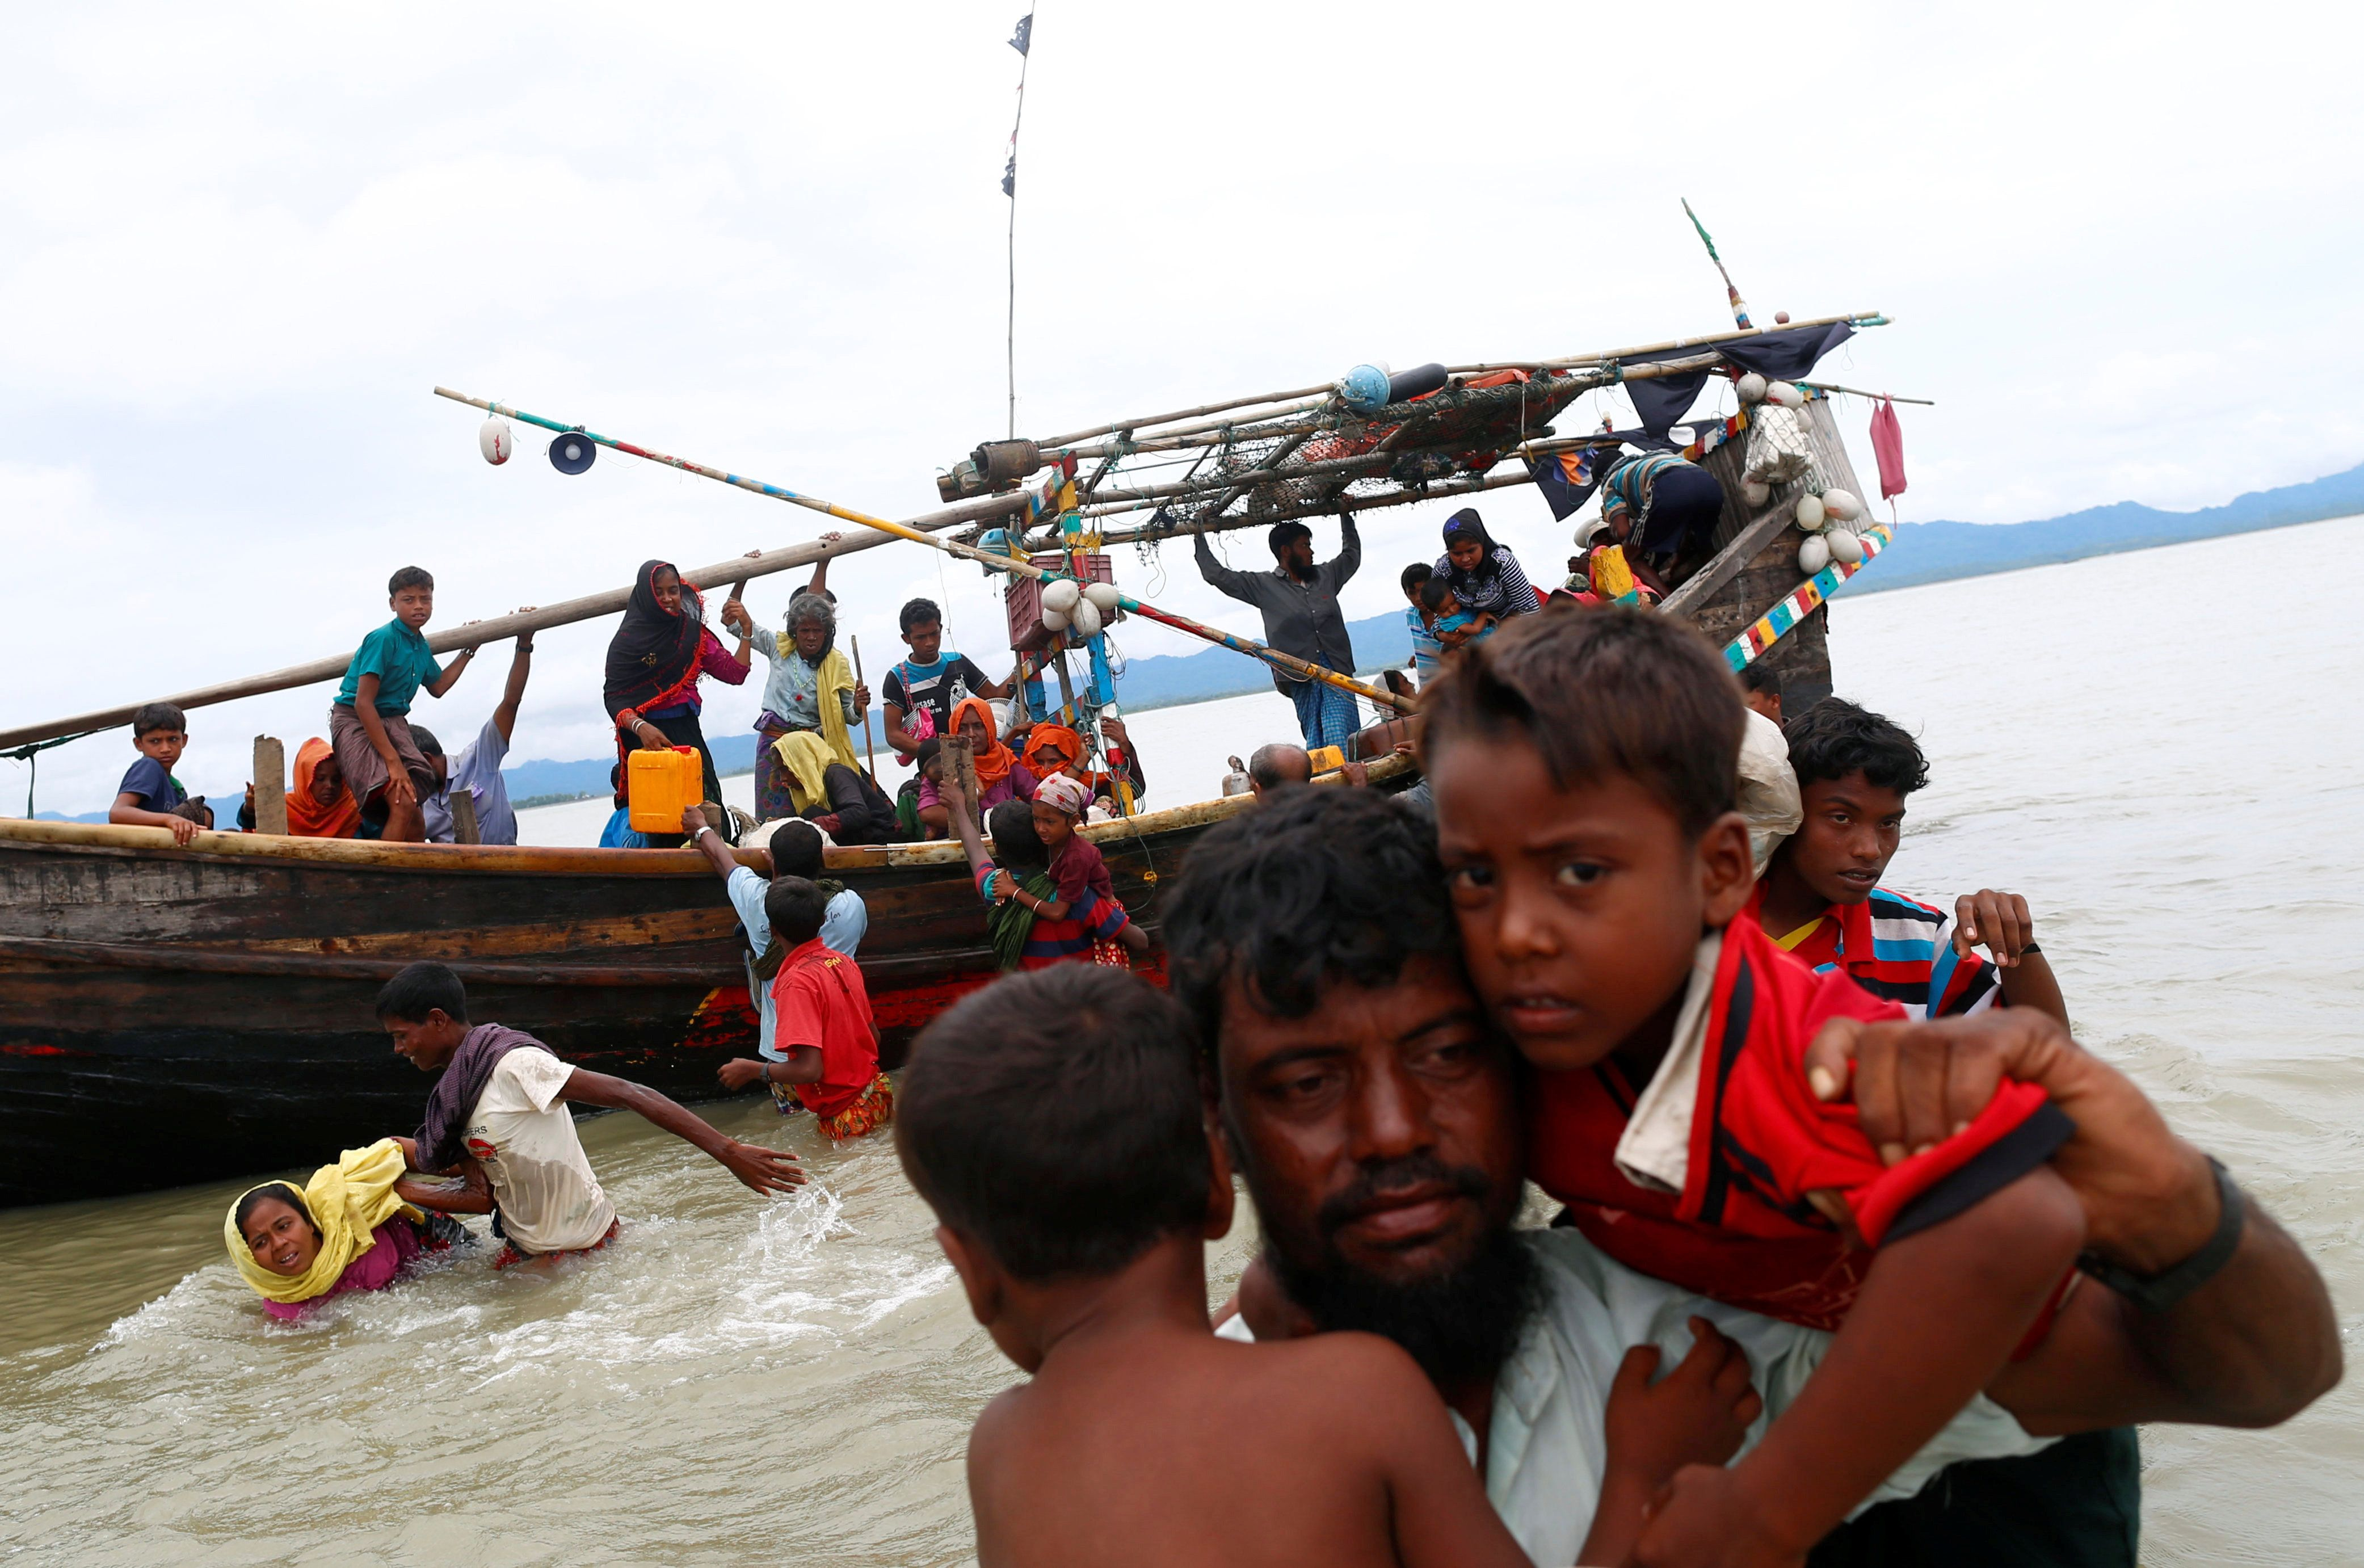 burma crisis In rakhine state, longstanding communal tensions and extreme discrimination by the government against the rohingya muslim minority has morphed into a major crisis.